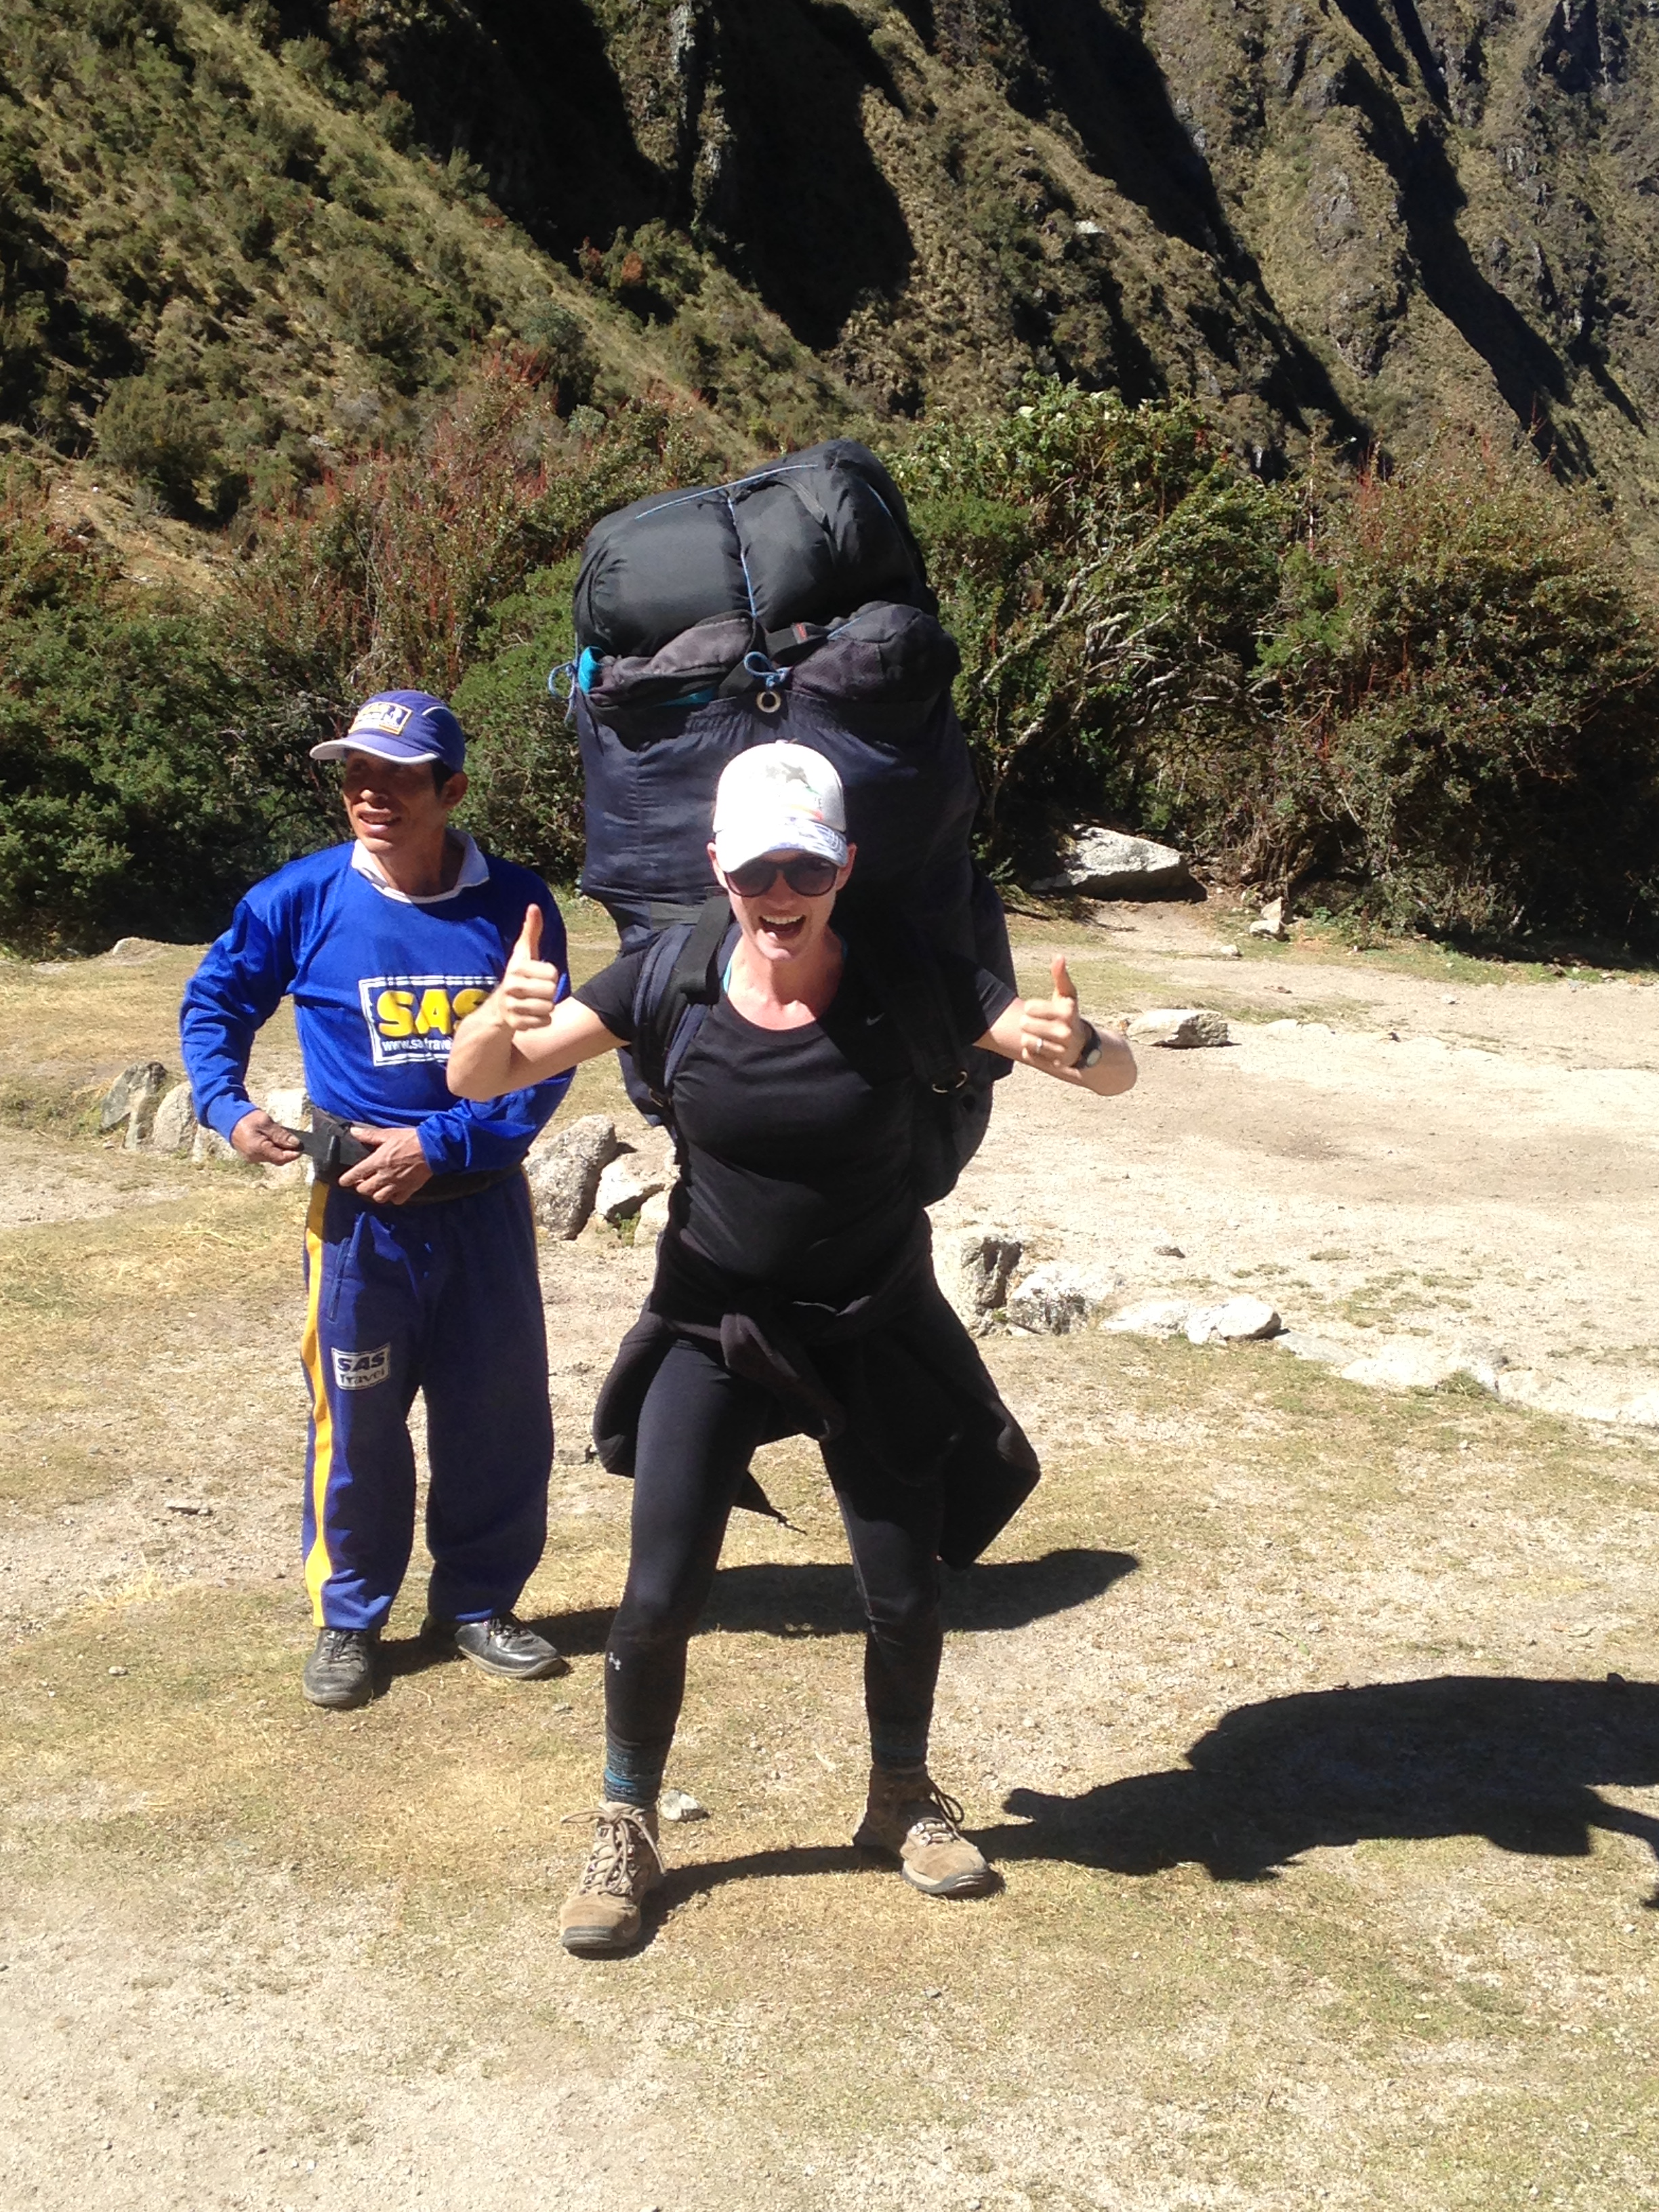 Me trying on the pack the hired porters carry. See that tiny man behind me? He RUNS with this gigantic bag full of hikers' stuff up and down the Inca Trail. Mad respect for these guys.